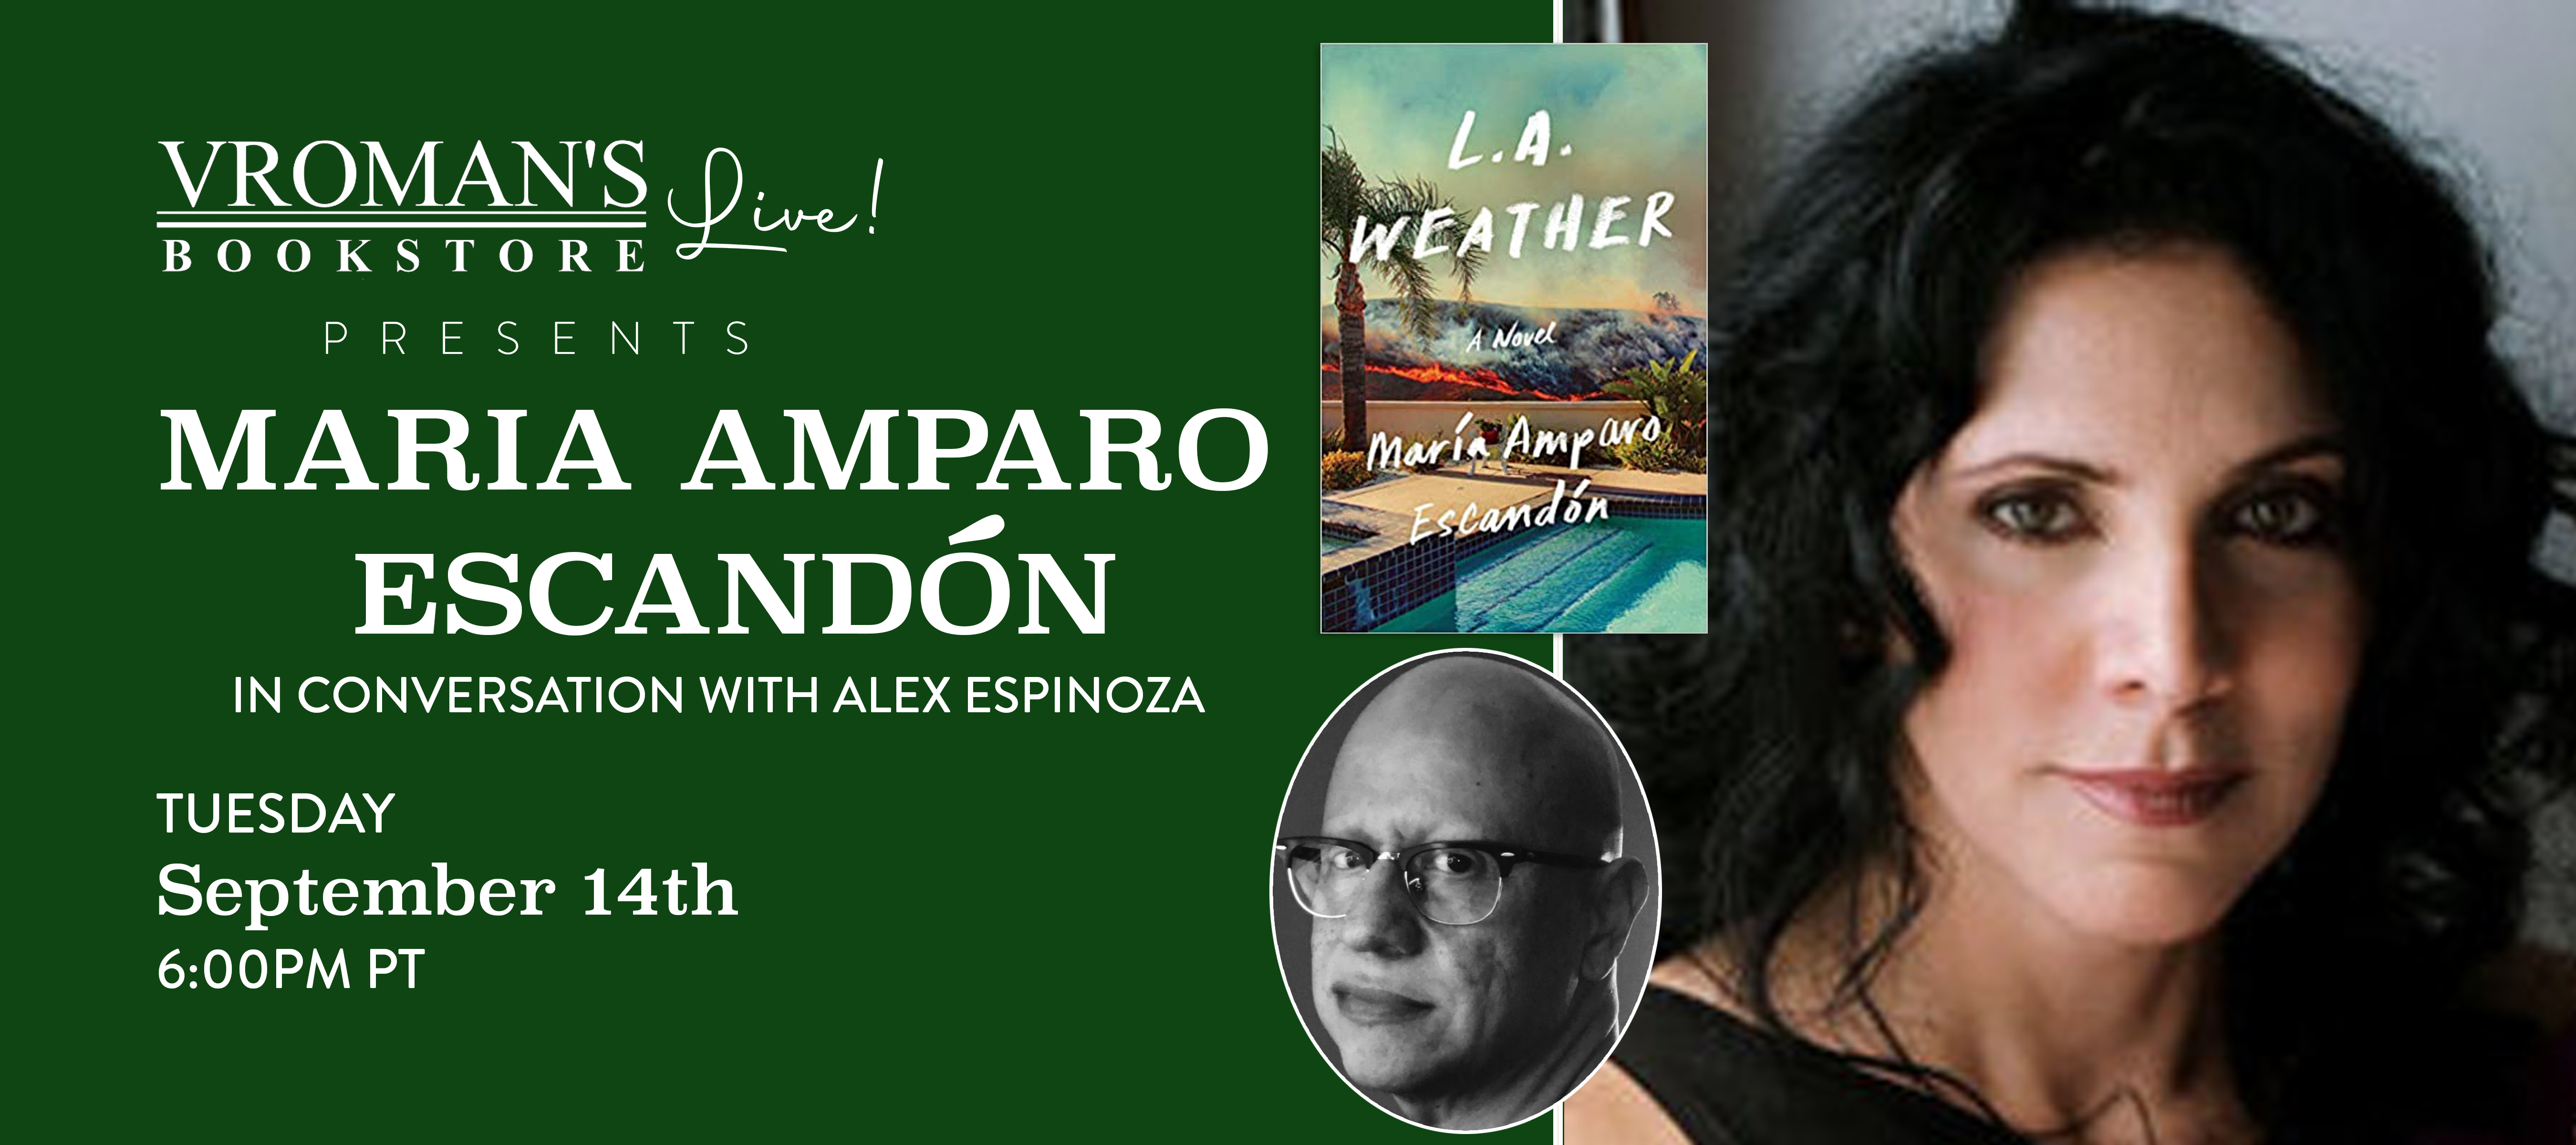 Image of green banner with details for Maria Amparo Escandón, in conversation with Alex Espinoza, discusses L.A. Weather on Tuesday, September 14th, 6pm